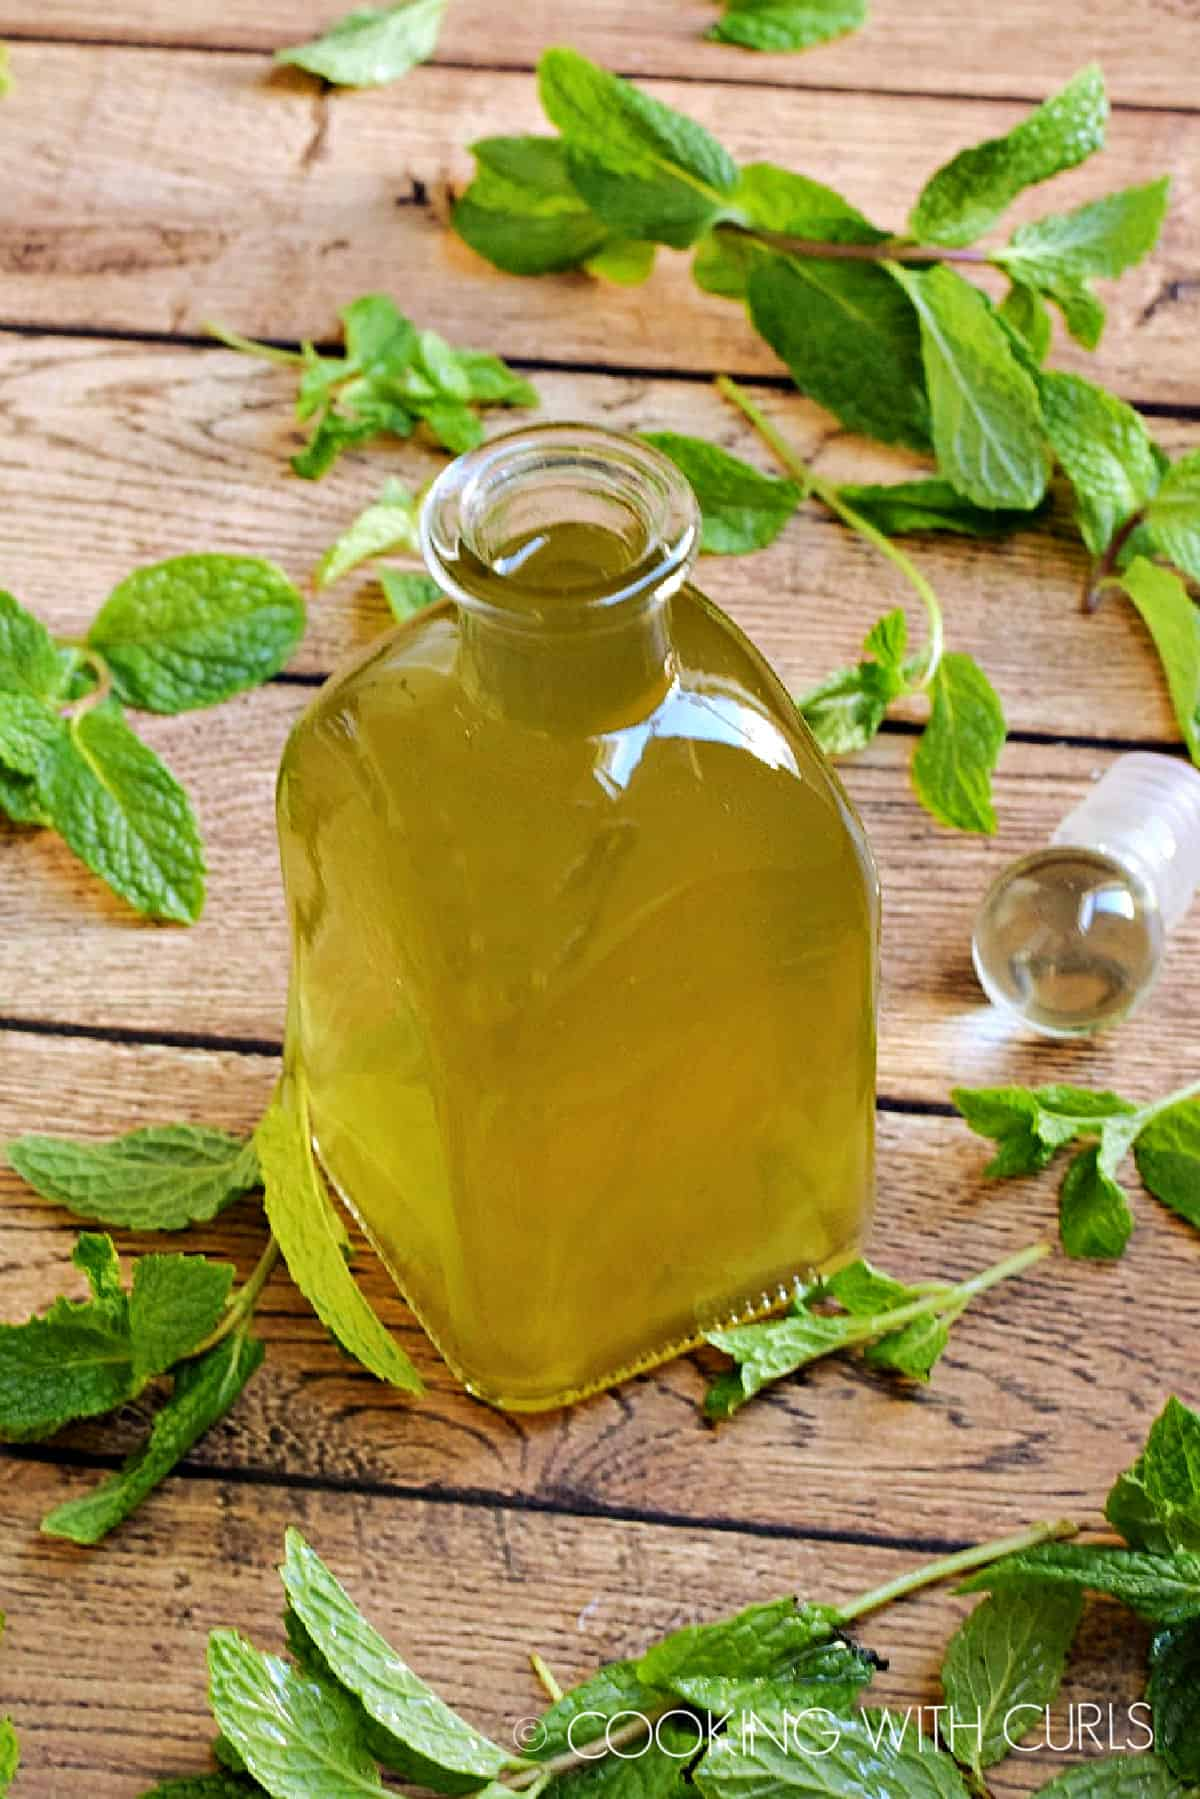 a square glass bottle of peppermint syrup surrounded by fresh mint sprigs on a wooden background.